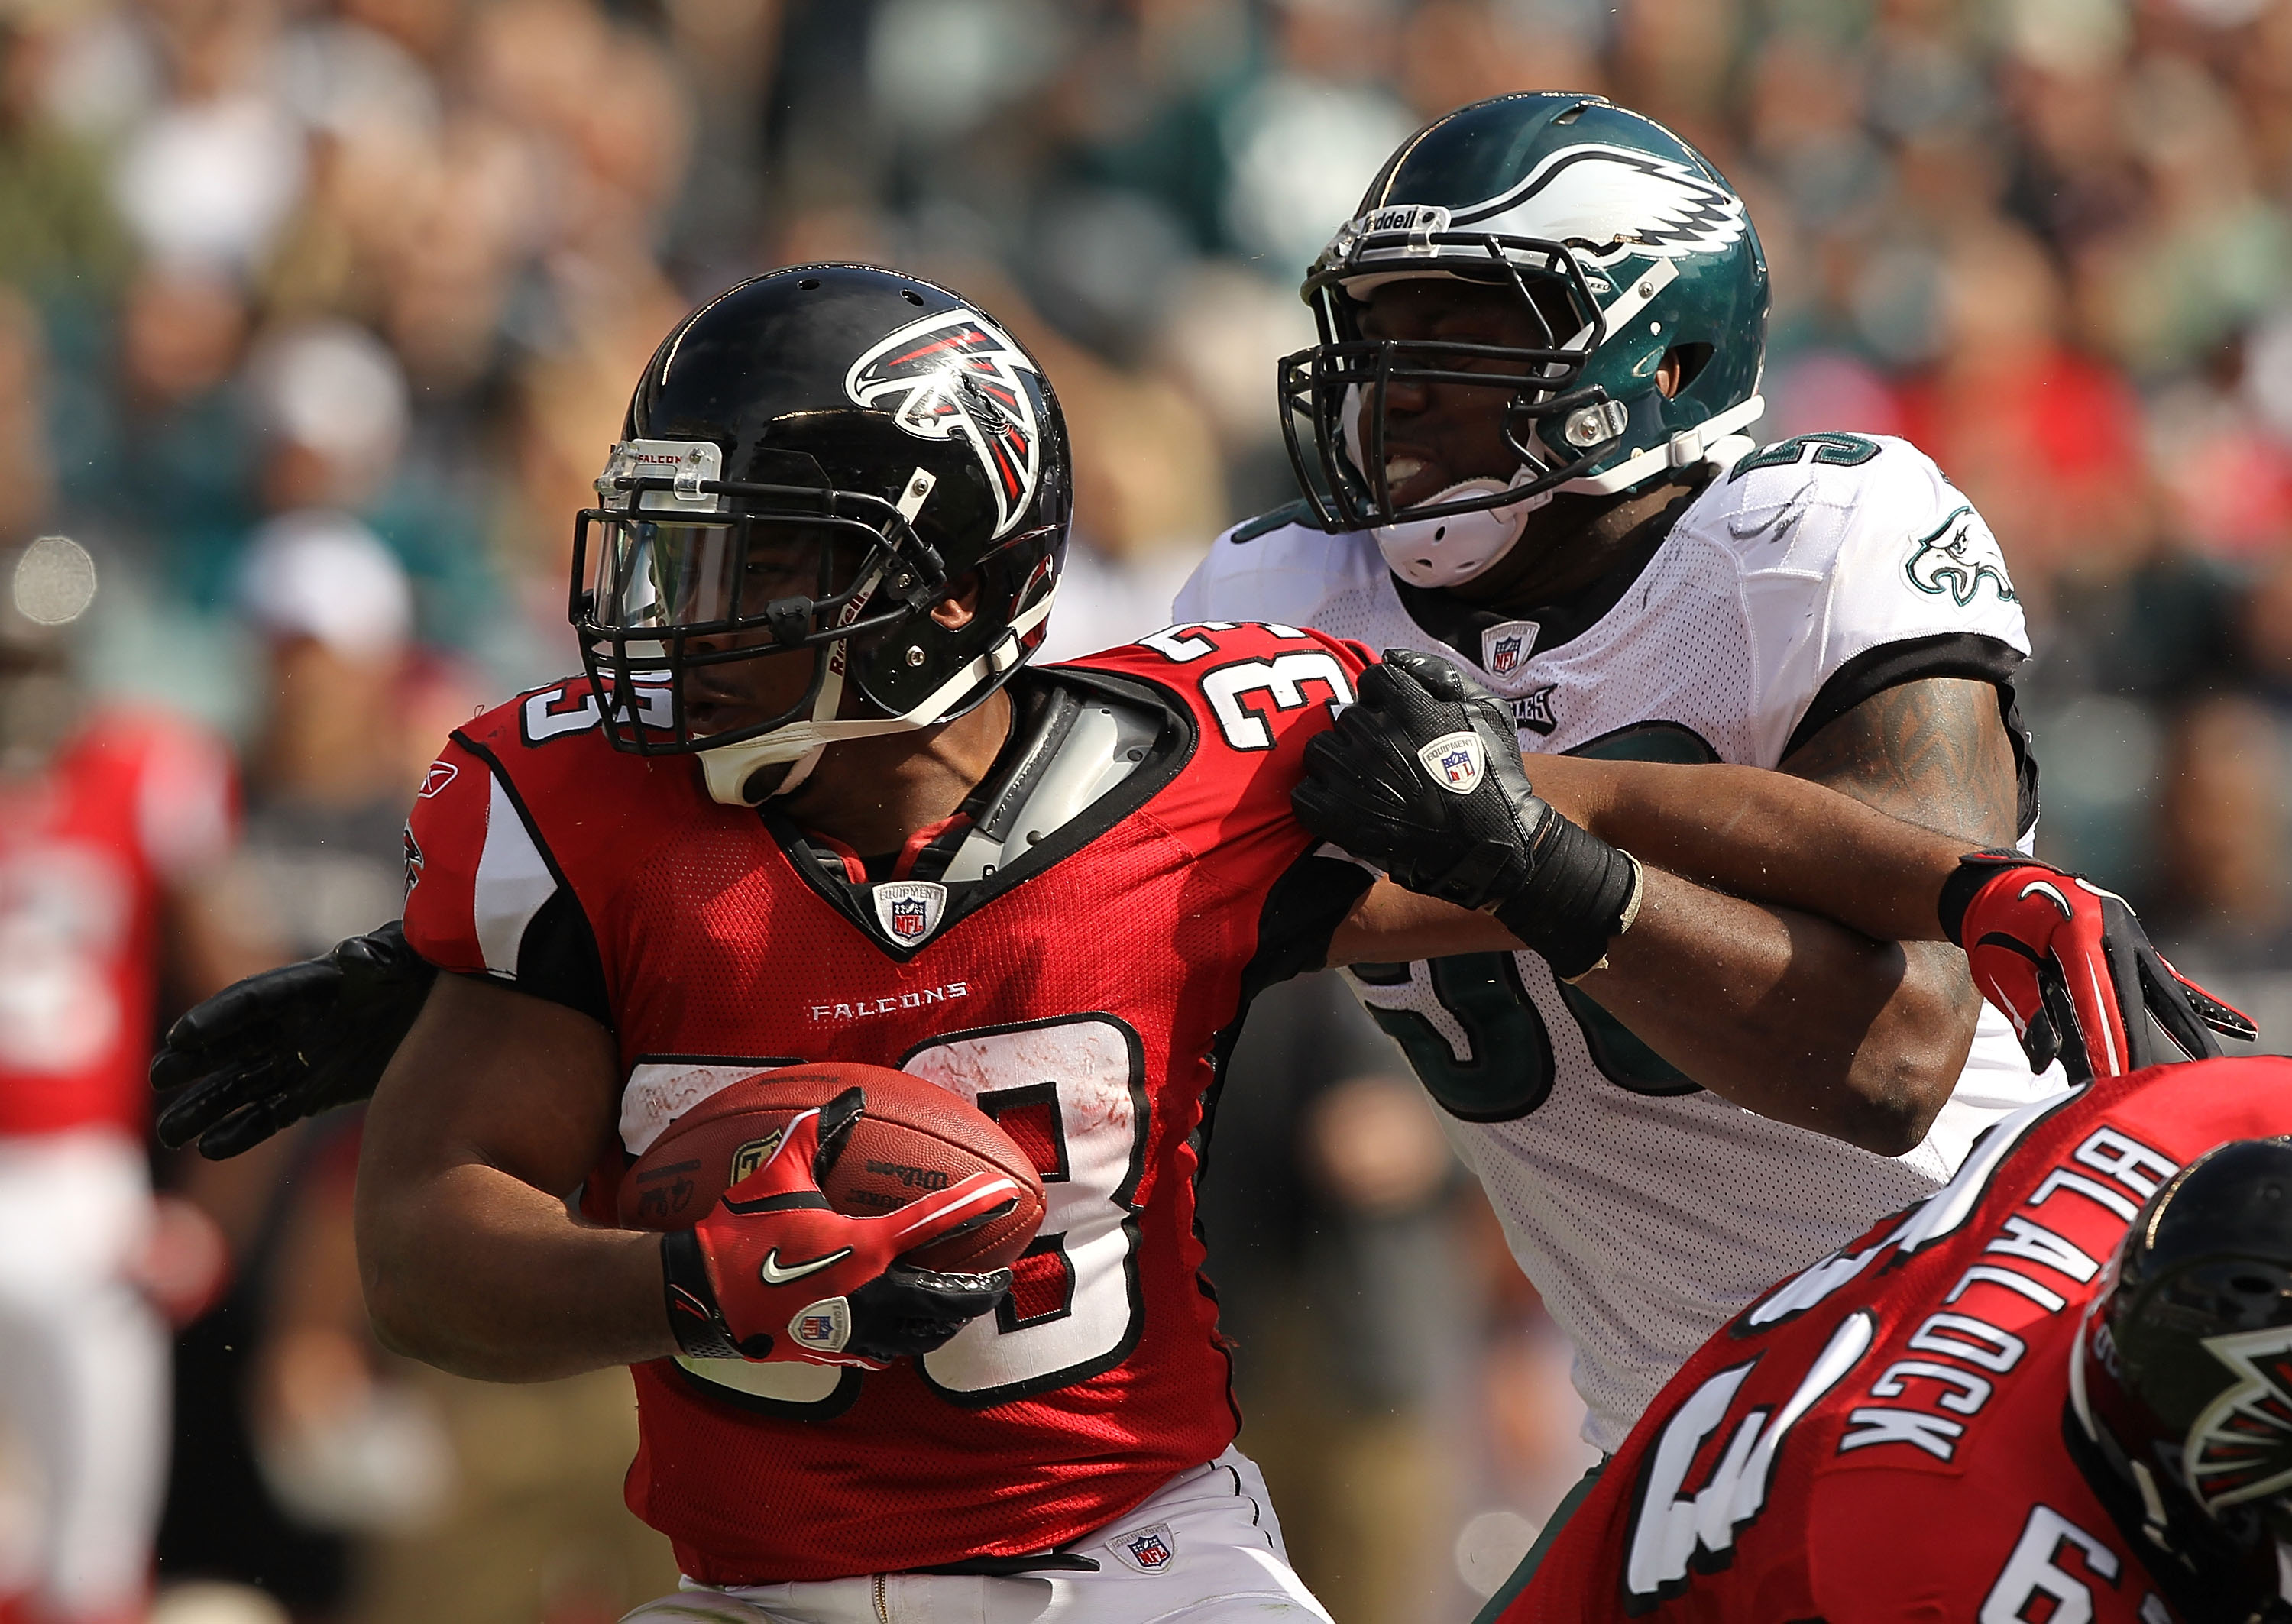 PHILADELPHIA - OCTOBER 17:  Michael Turner #33 of the Atlanta Falcons in action against  the Philadelphia Eaglesduring their game at Lincoln Financial Field on October 17, 2010 in Philadelphia, Pennsylvania.  (Photo by Al Bello/Getty Images)